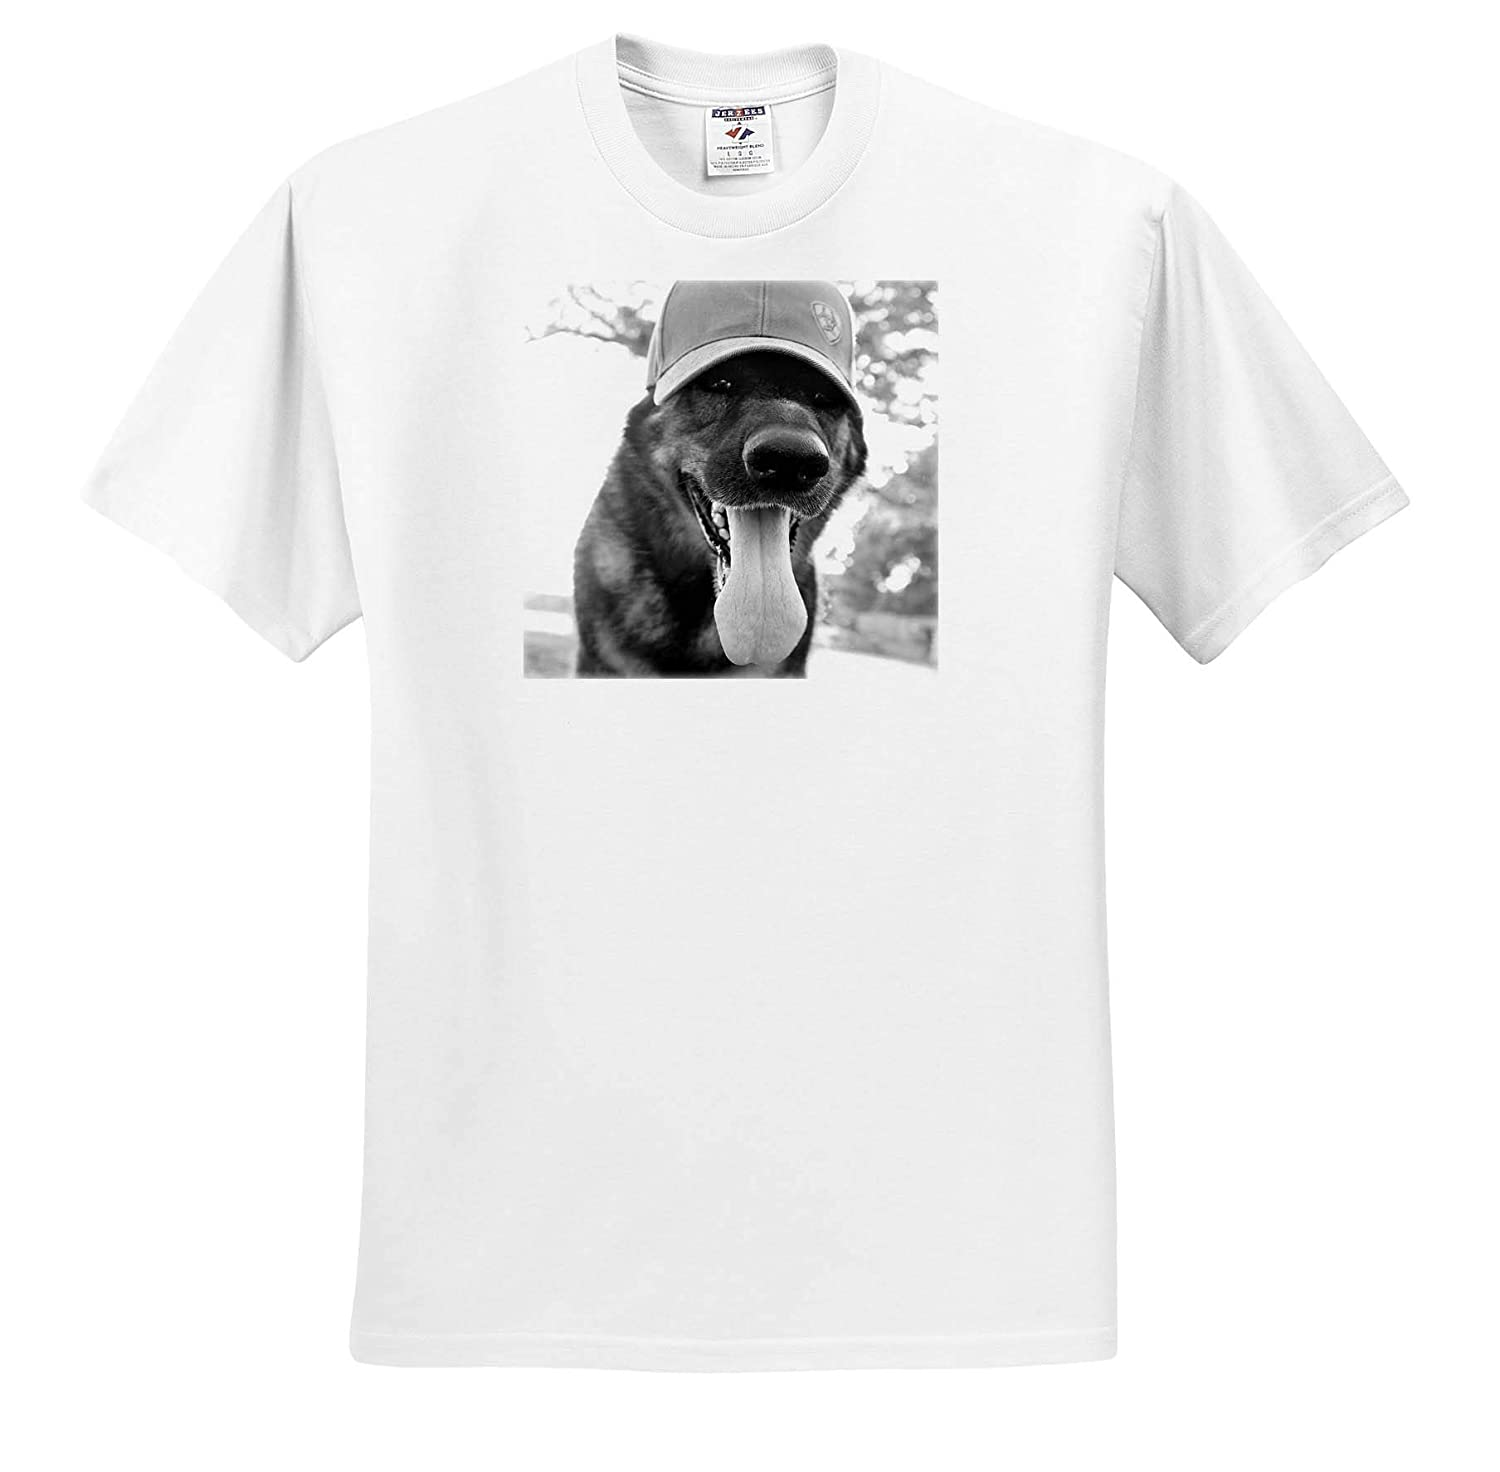 3dRose Stamp City Black and White Photograph of a German Shepherd Dog in a Trucker hat Animals - T-Shirts